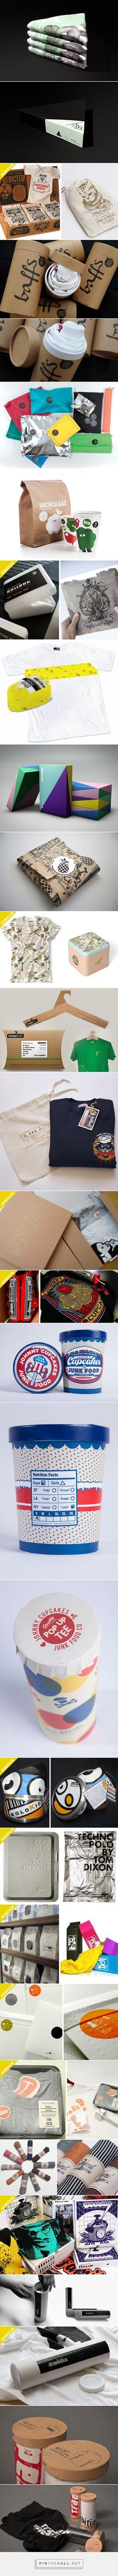 25 Cool T-shirt Packaging Design Examples – Part 2